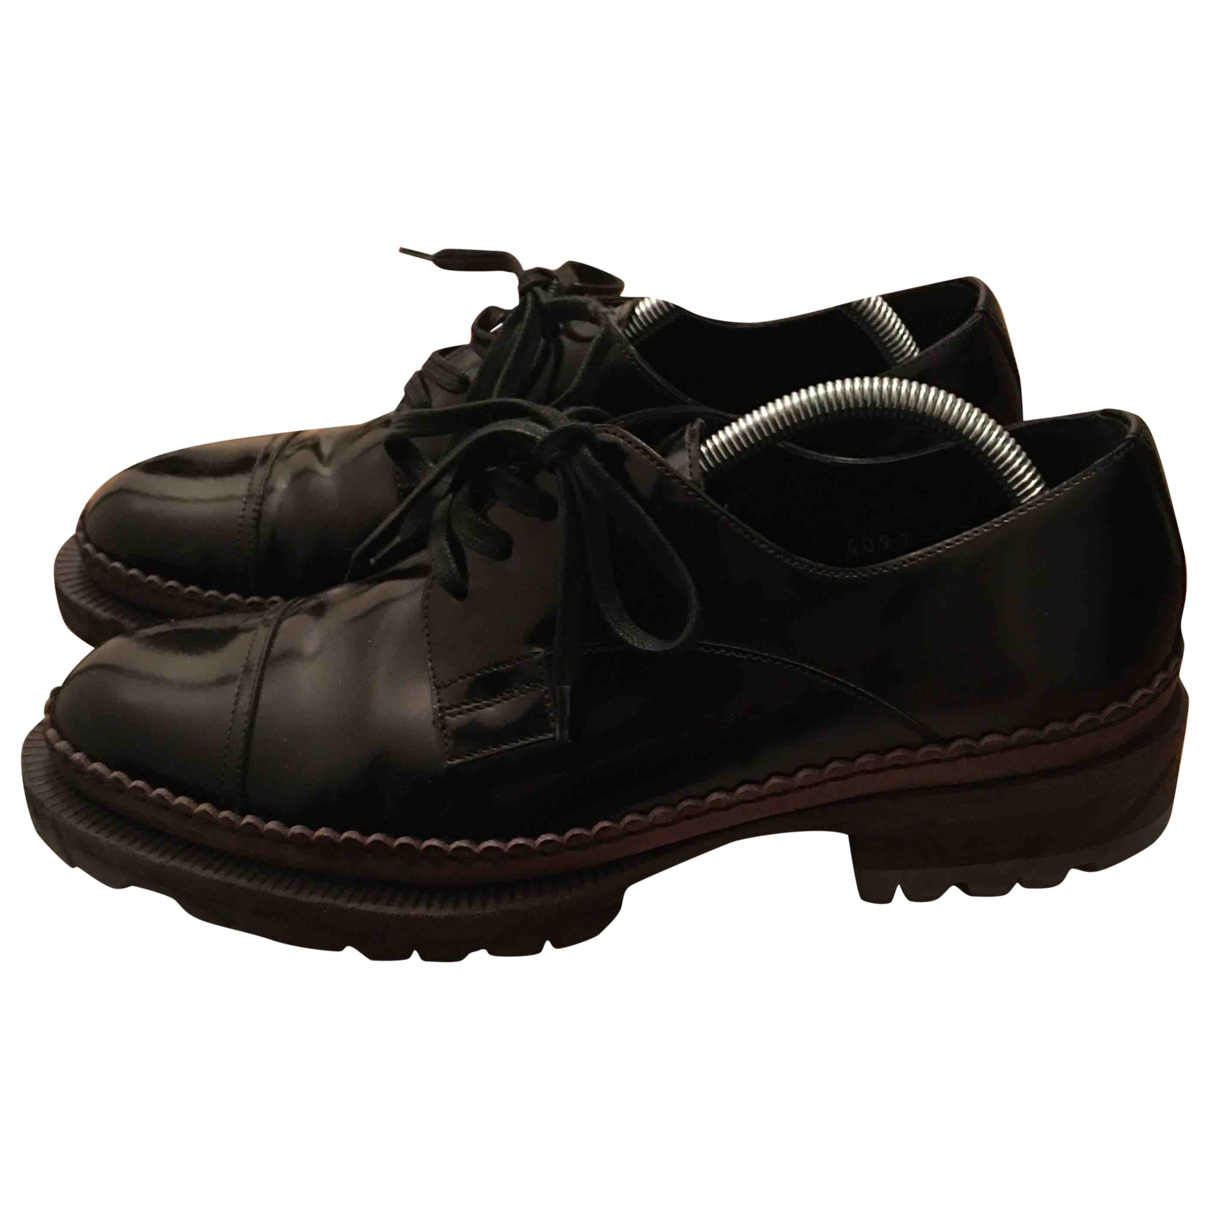 Dolce & Gabbana \N Black Patent leather Lace ups for Men 8 UK